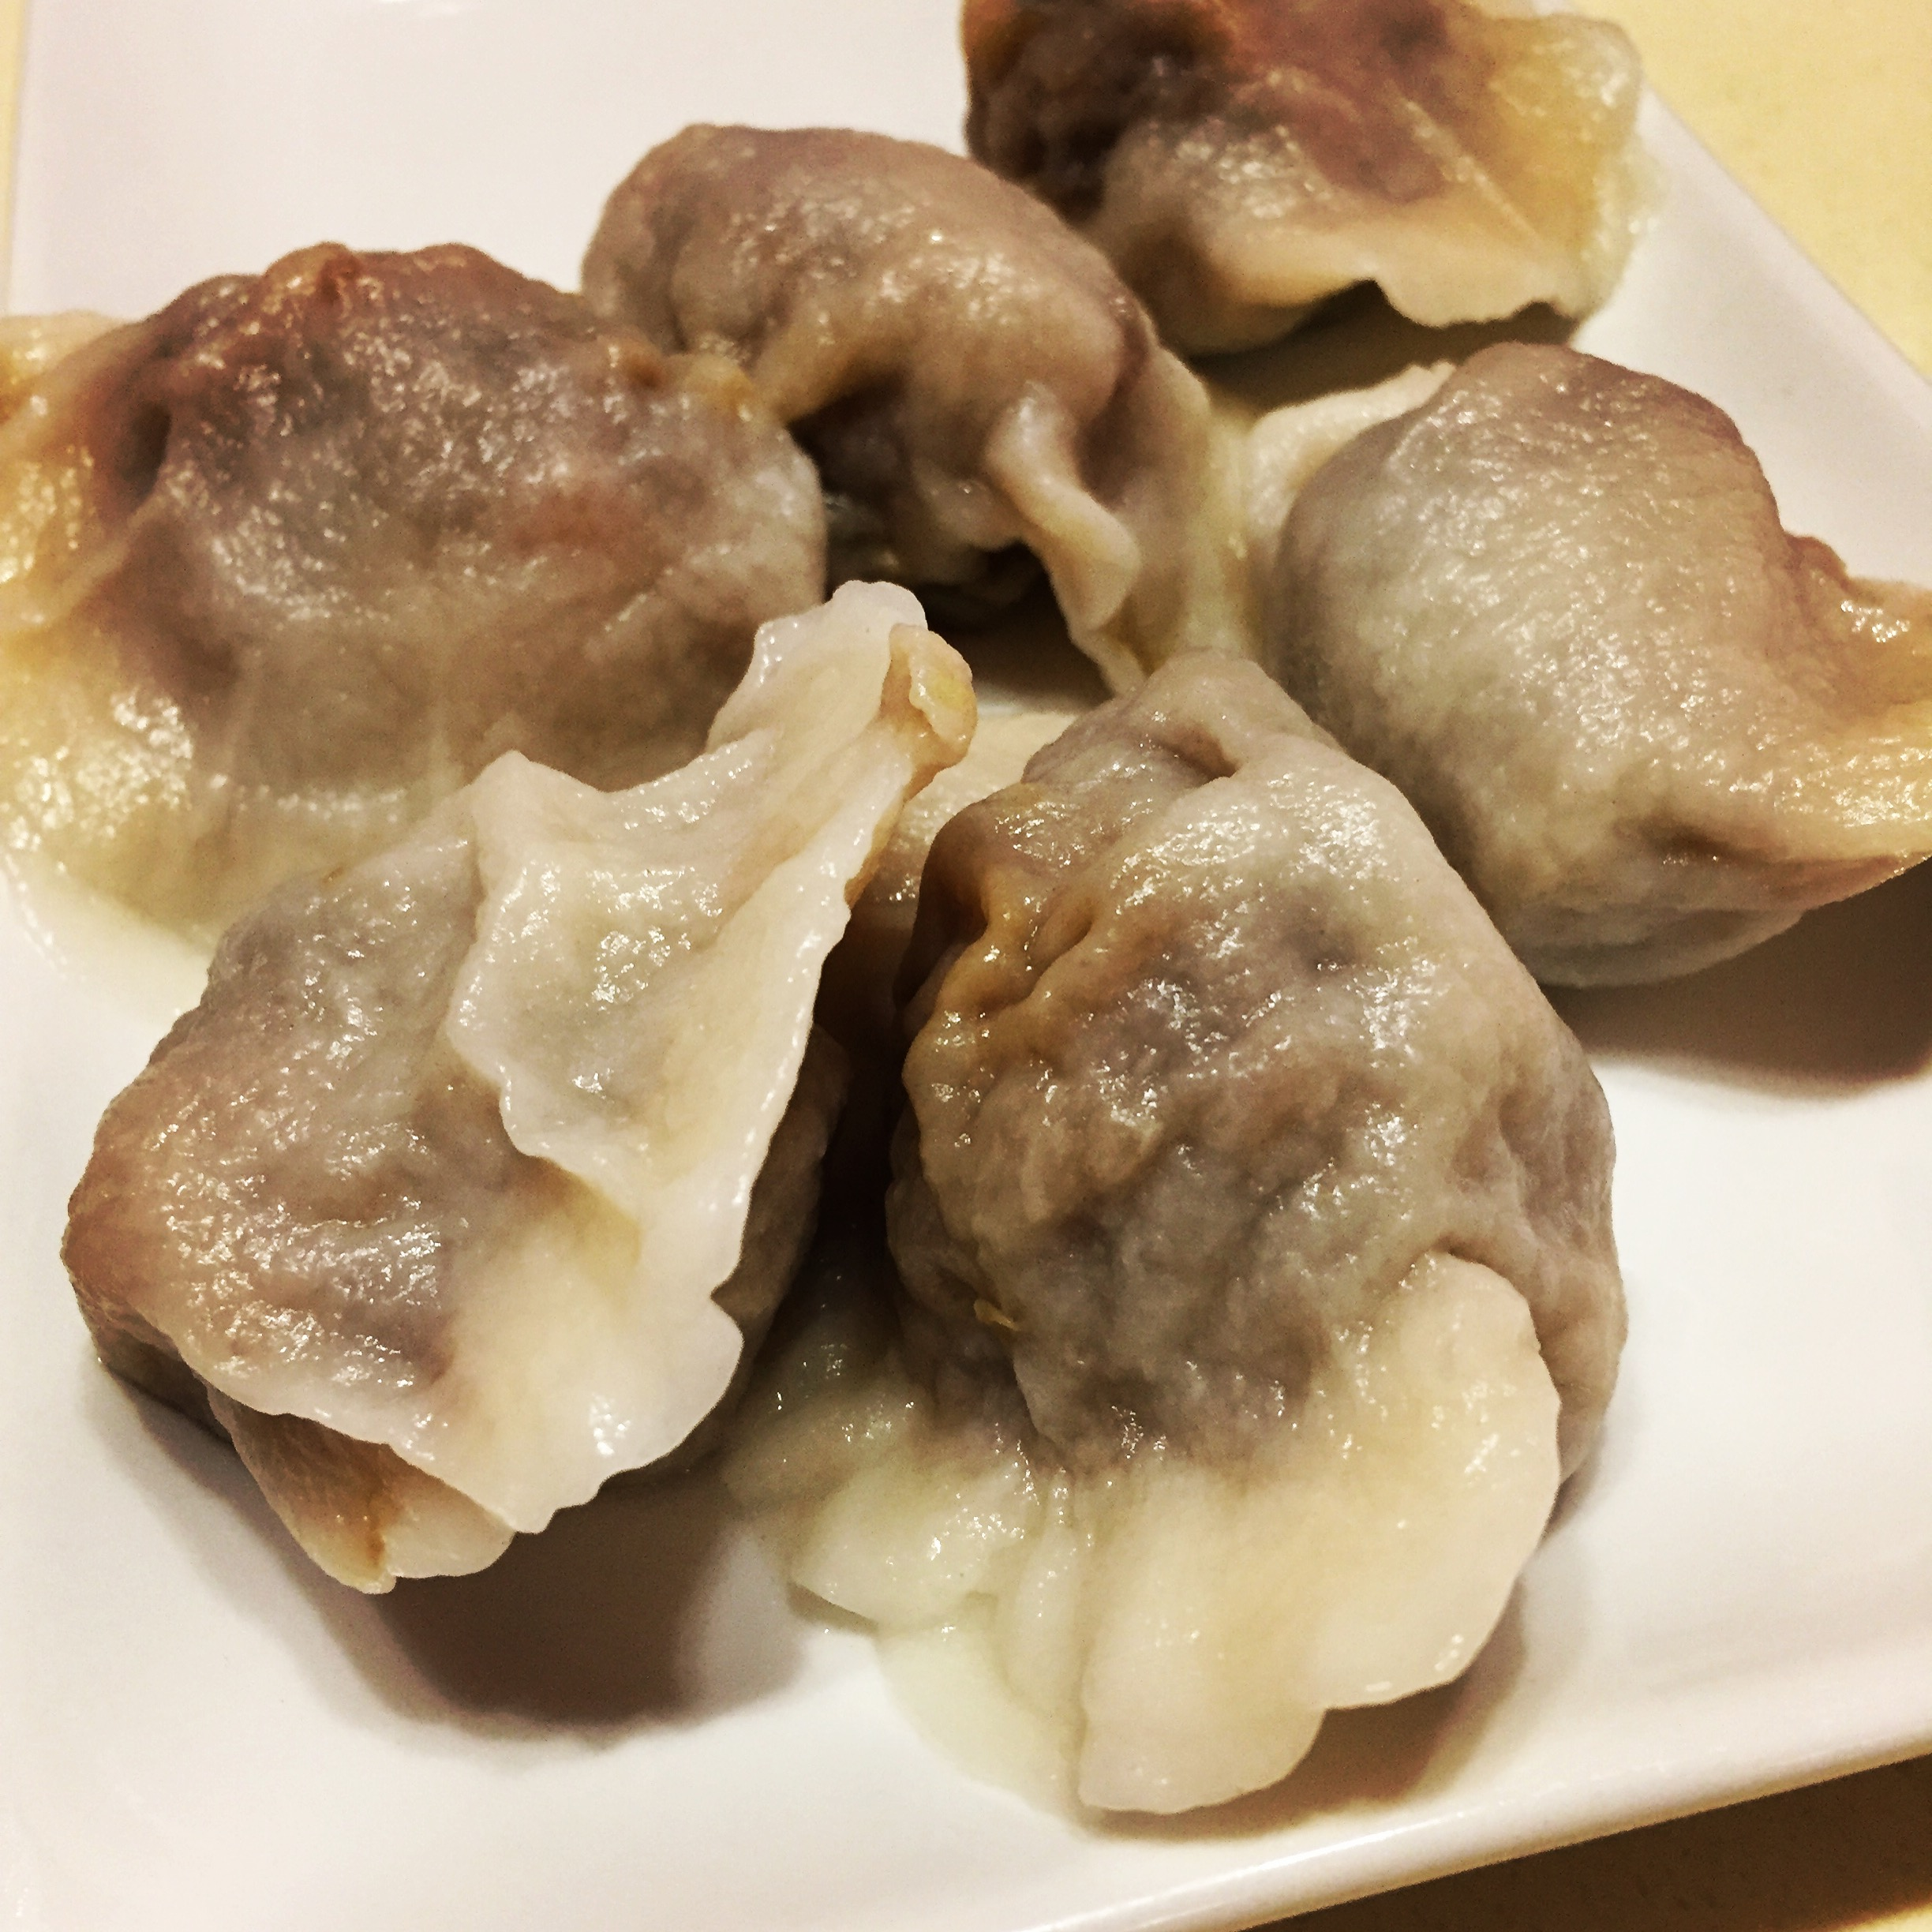 Dumpling Galaxy, Queens, NY | The search for the world\'s best dumplings